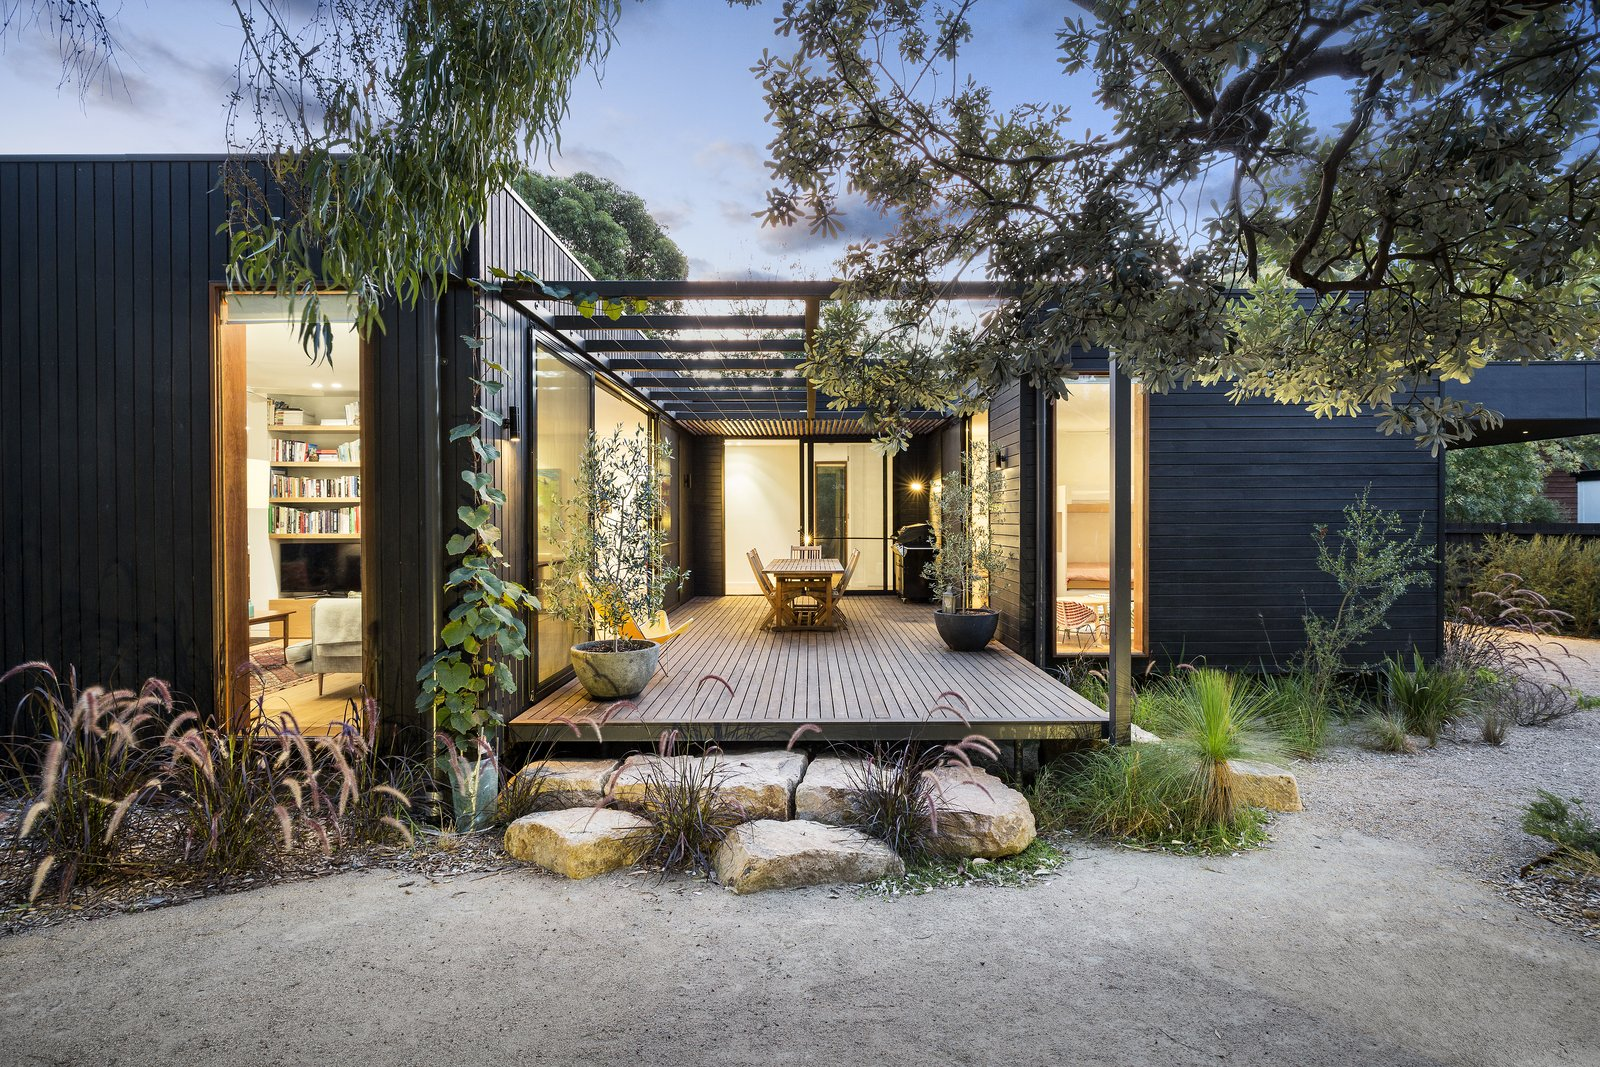 Garden, Shrubs, Side Yard, Trees, Grass, Wood, Boulders, Walkways, Large, Metal, Decking, Exterior, House, and Wood Architect: Pleysier Perkins, Location: Merricks Beach, Victoria, Australia  Exterior Decking Wood Photos from The Merricks Beach House